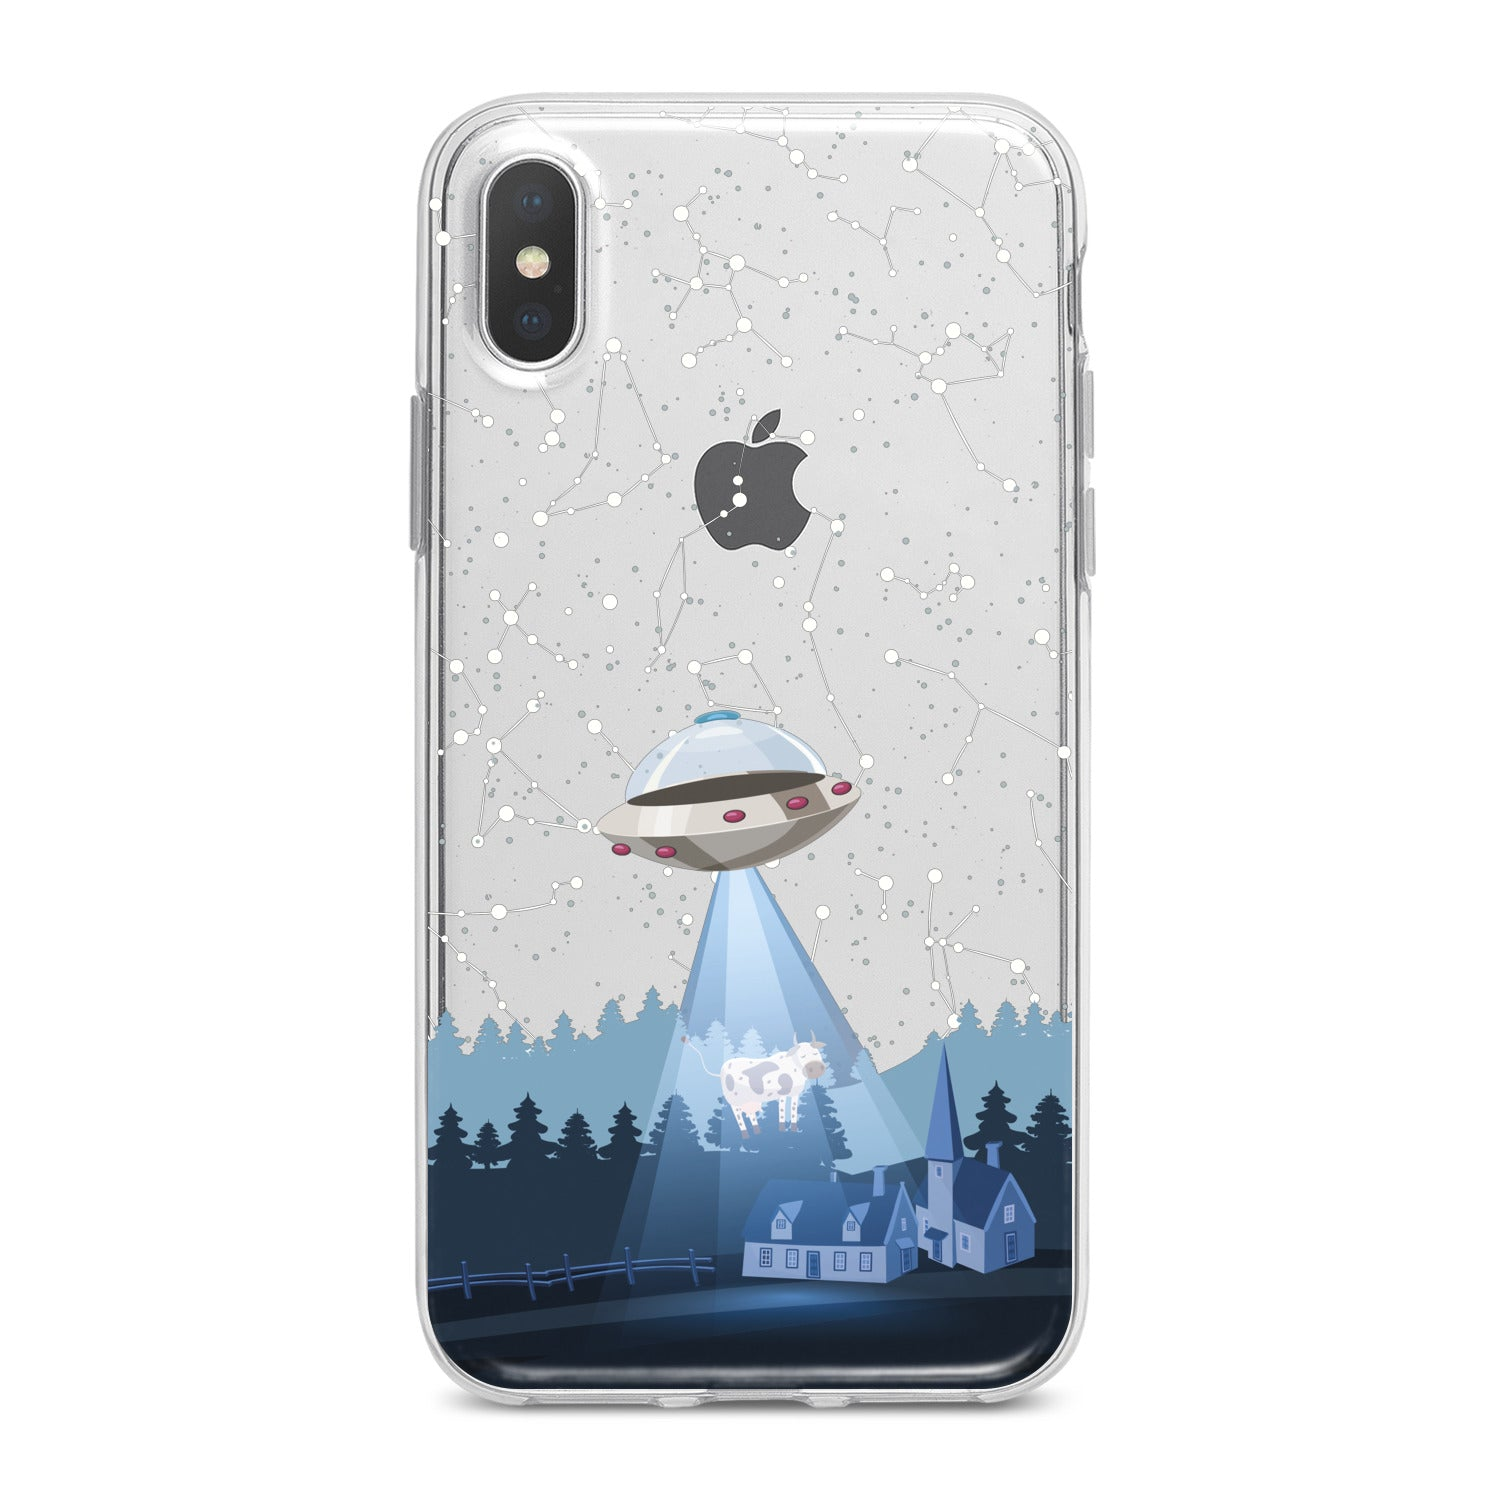 Lex Altern Spaceship Phone Case for your iPhone & Android phone.